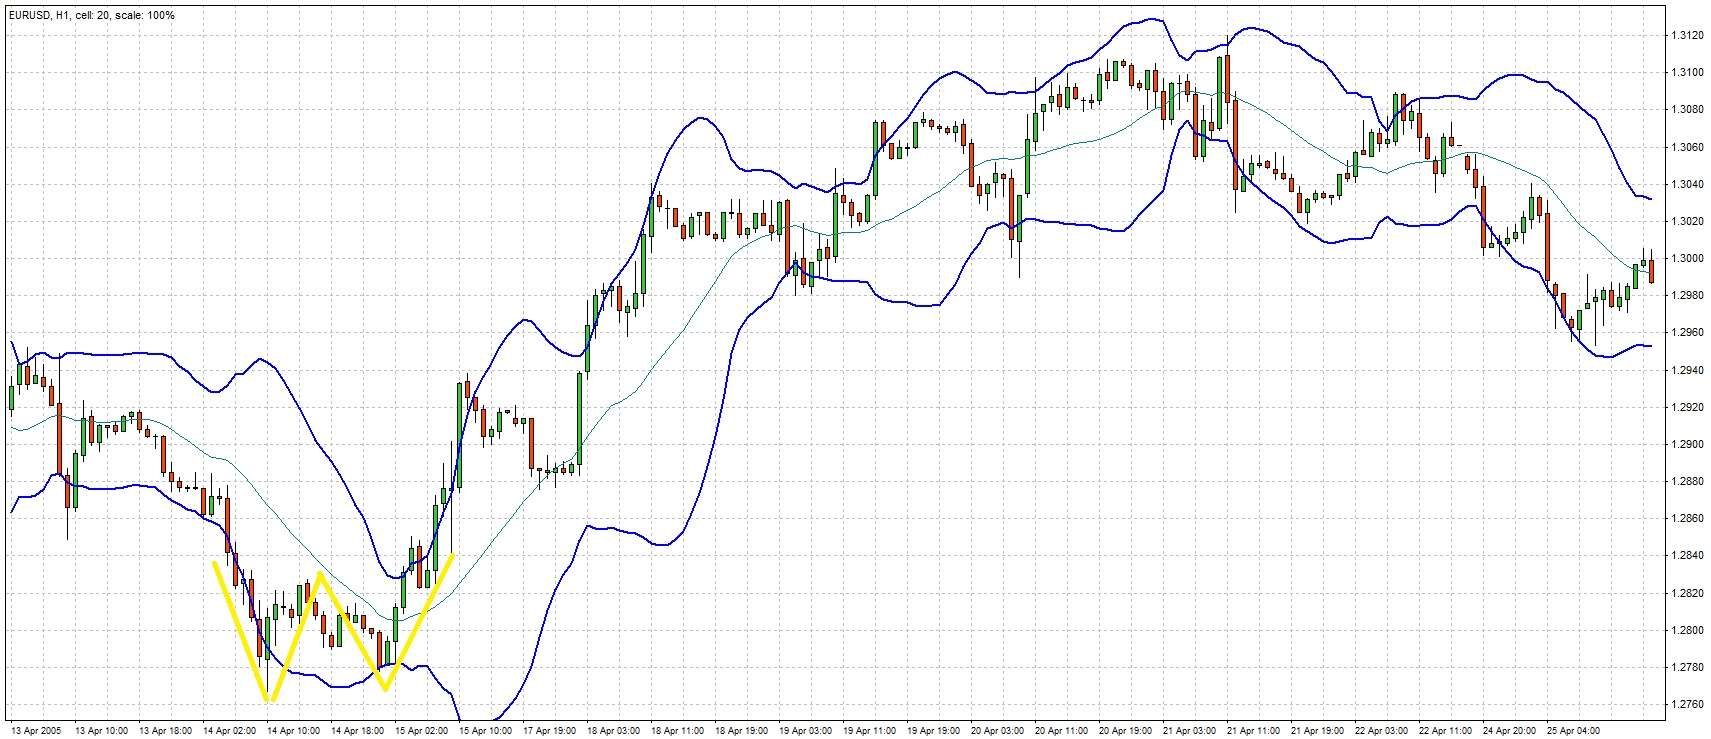 Bollinger Bands reversal with w bottom